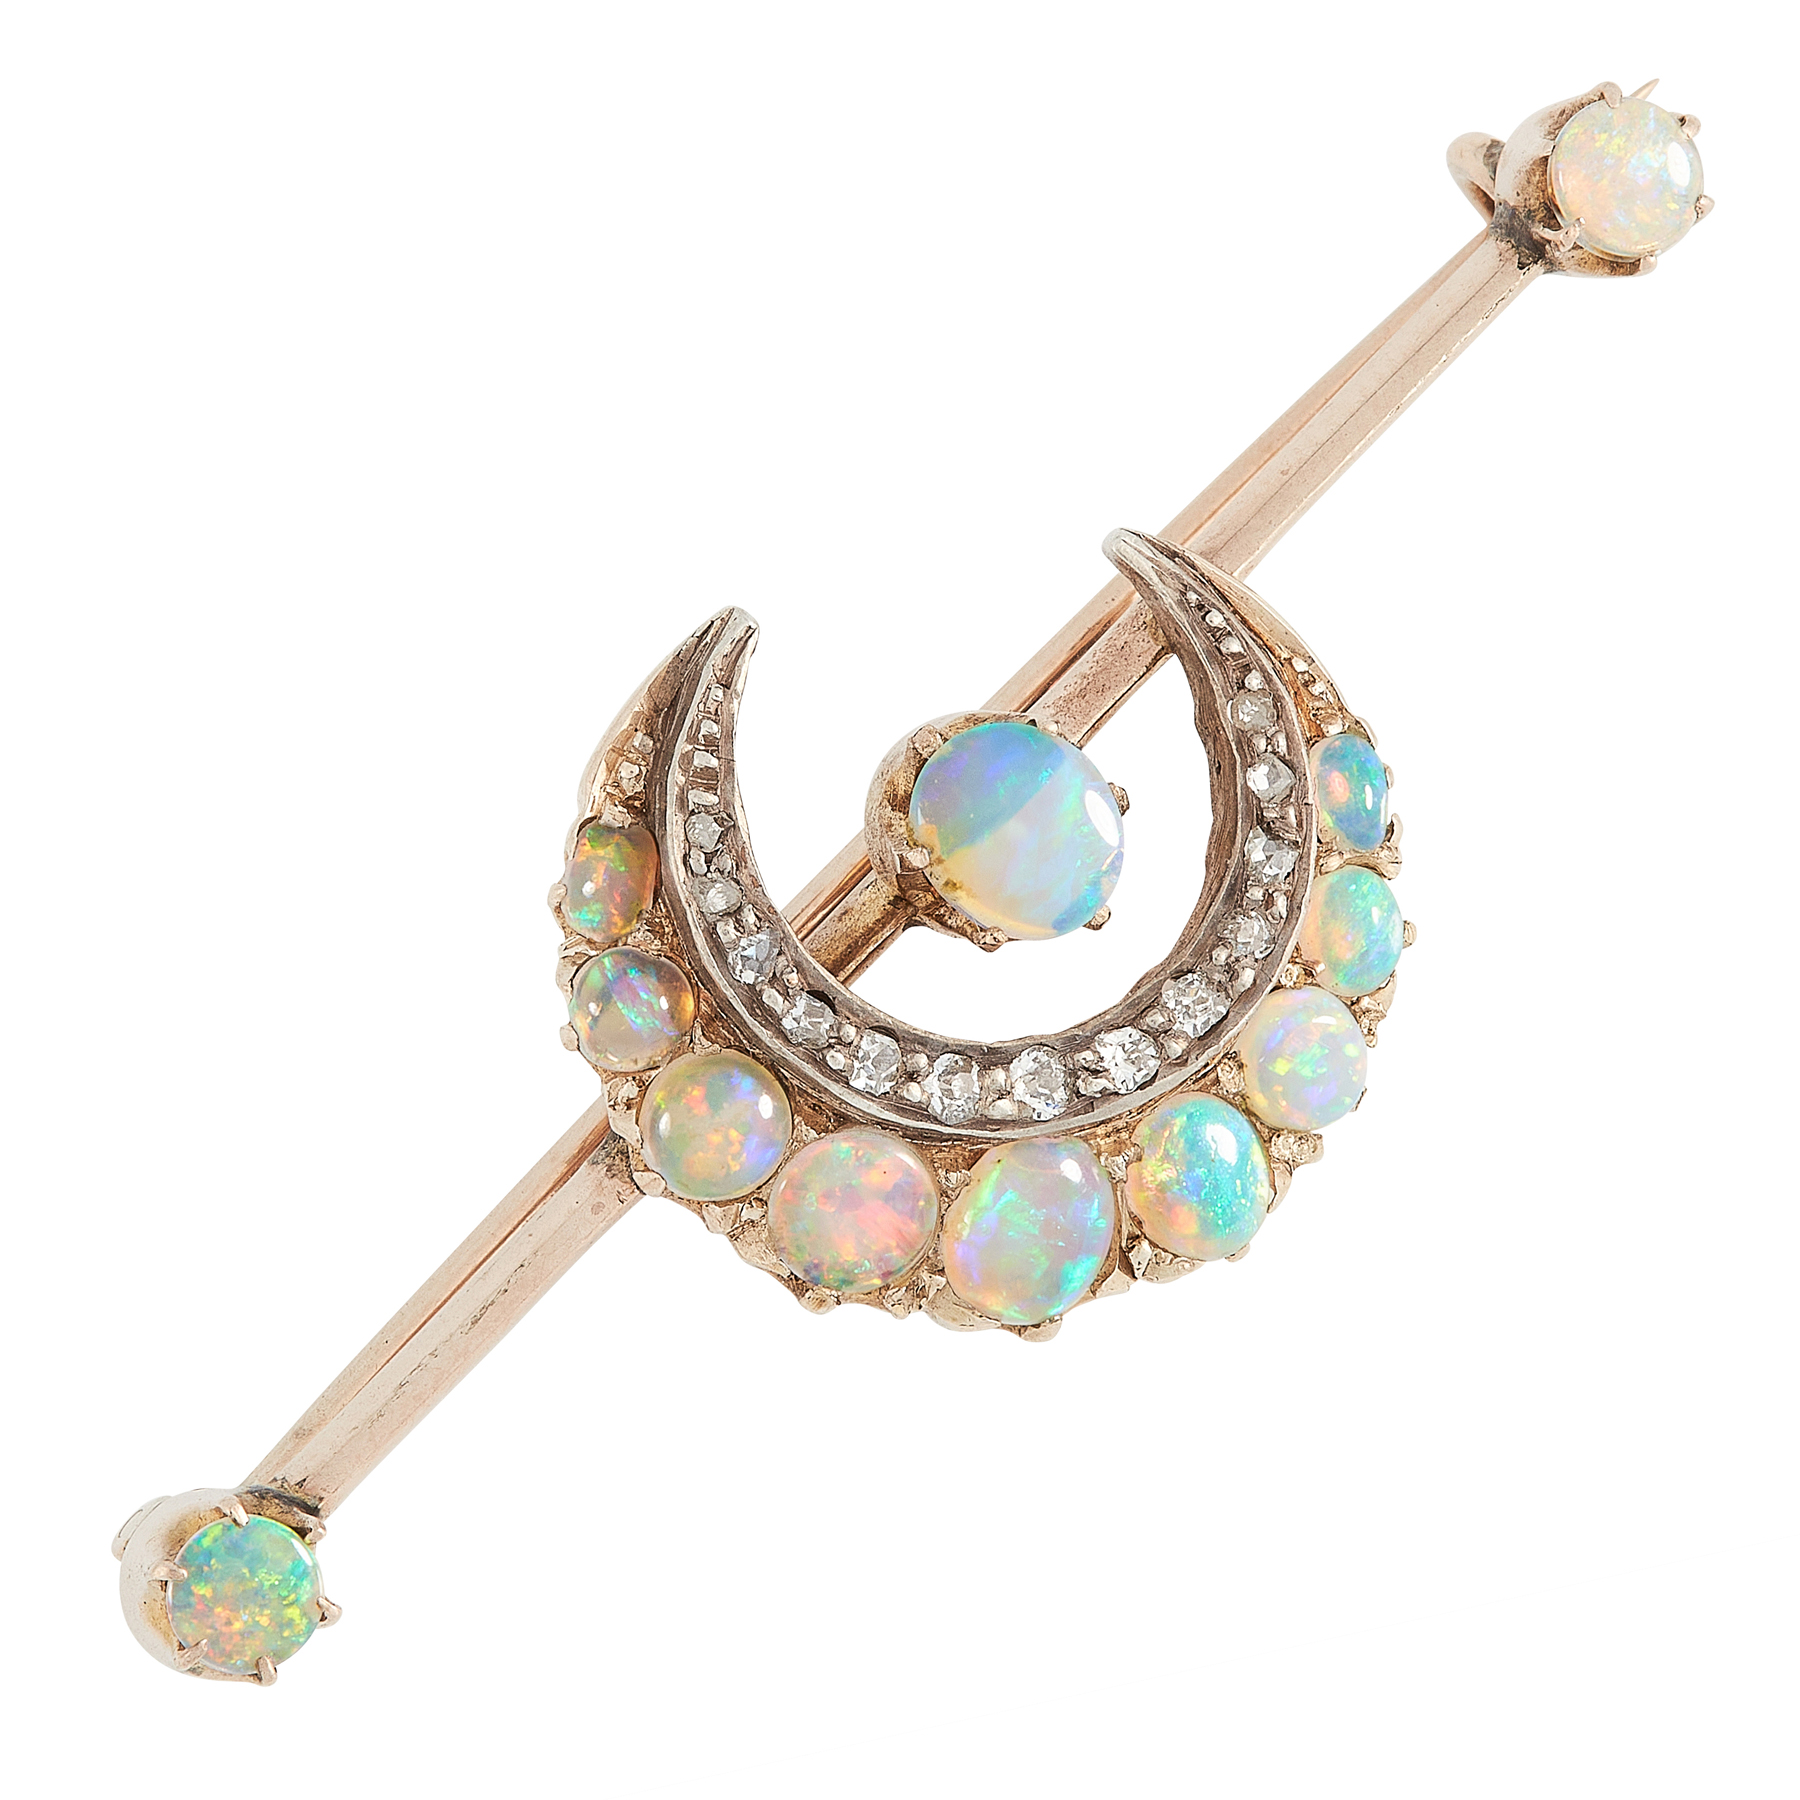 AN ANTIQUE OPAL AND DIAMOND BROOCH, 19TH CENTURY in high carat yellow gold, designed as a crescent